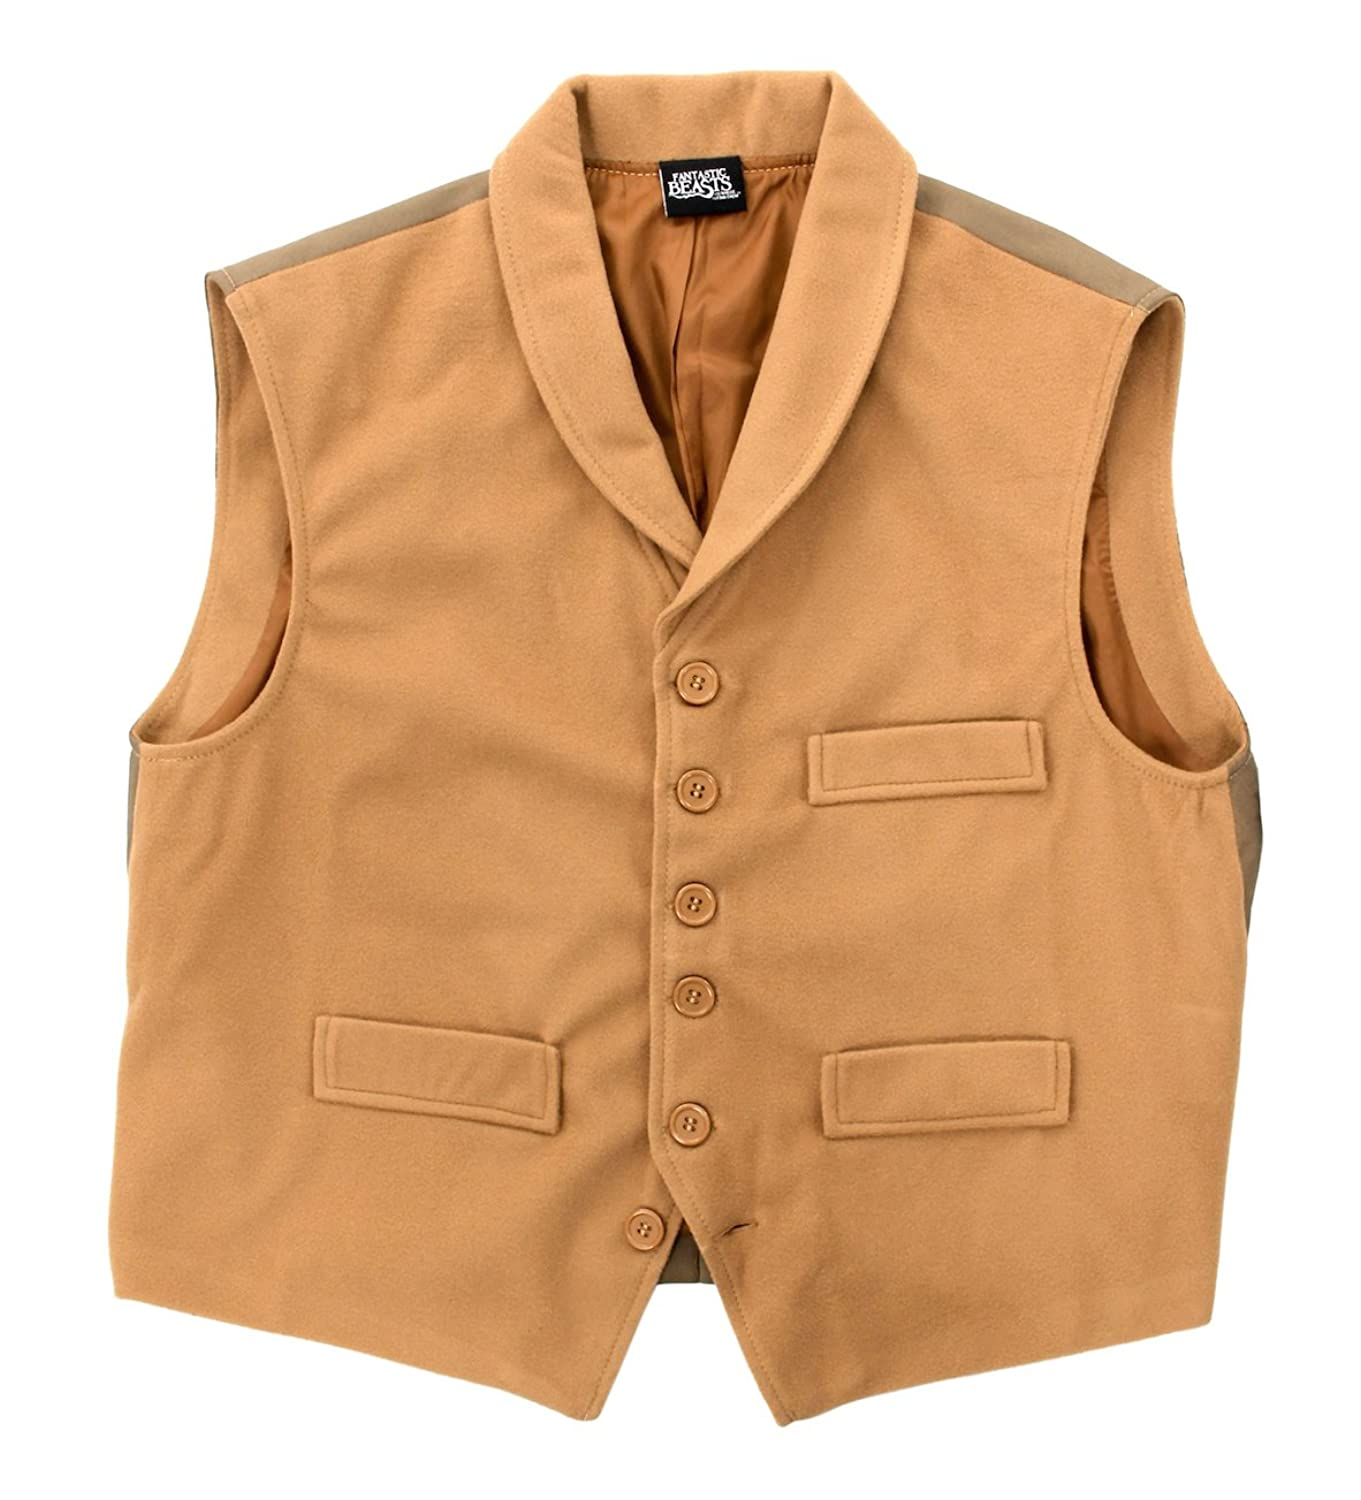 Fantastic Beasts and Where to Find Them Newt Scamander Vest